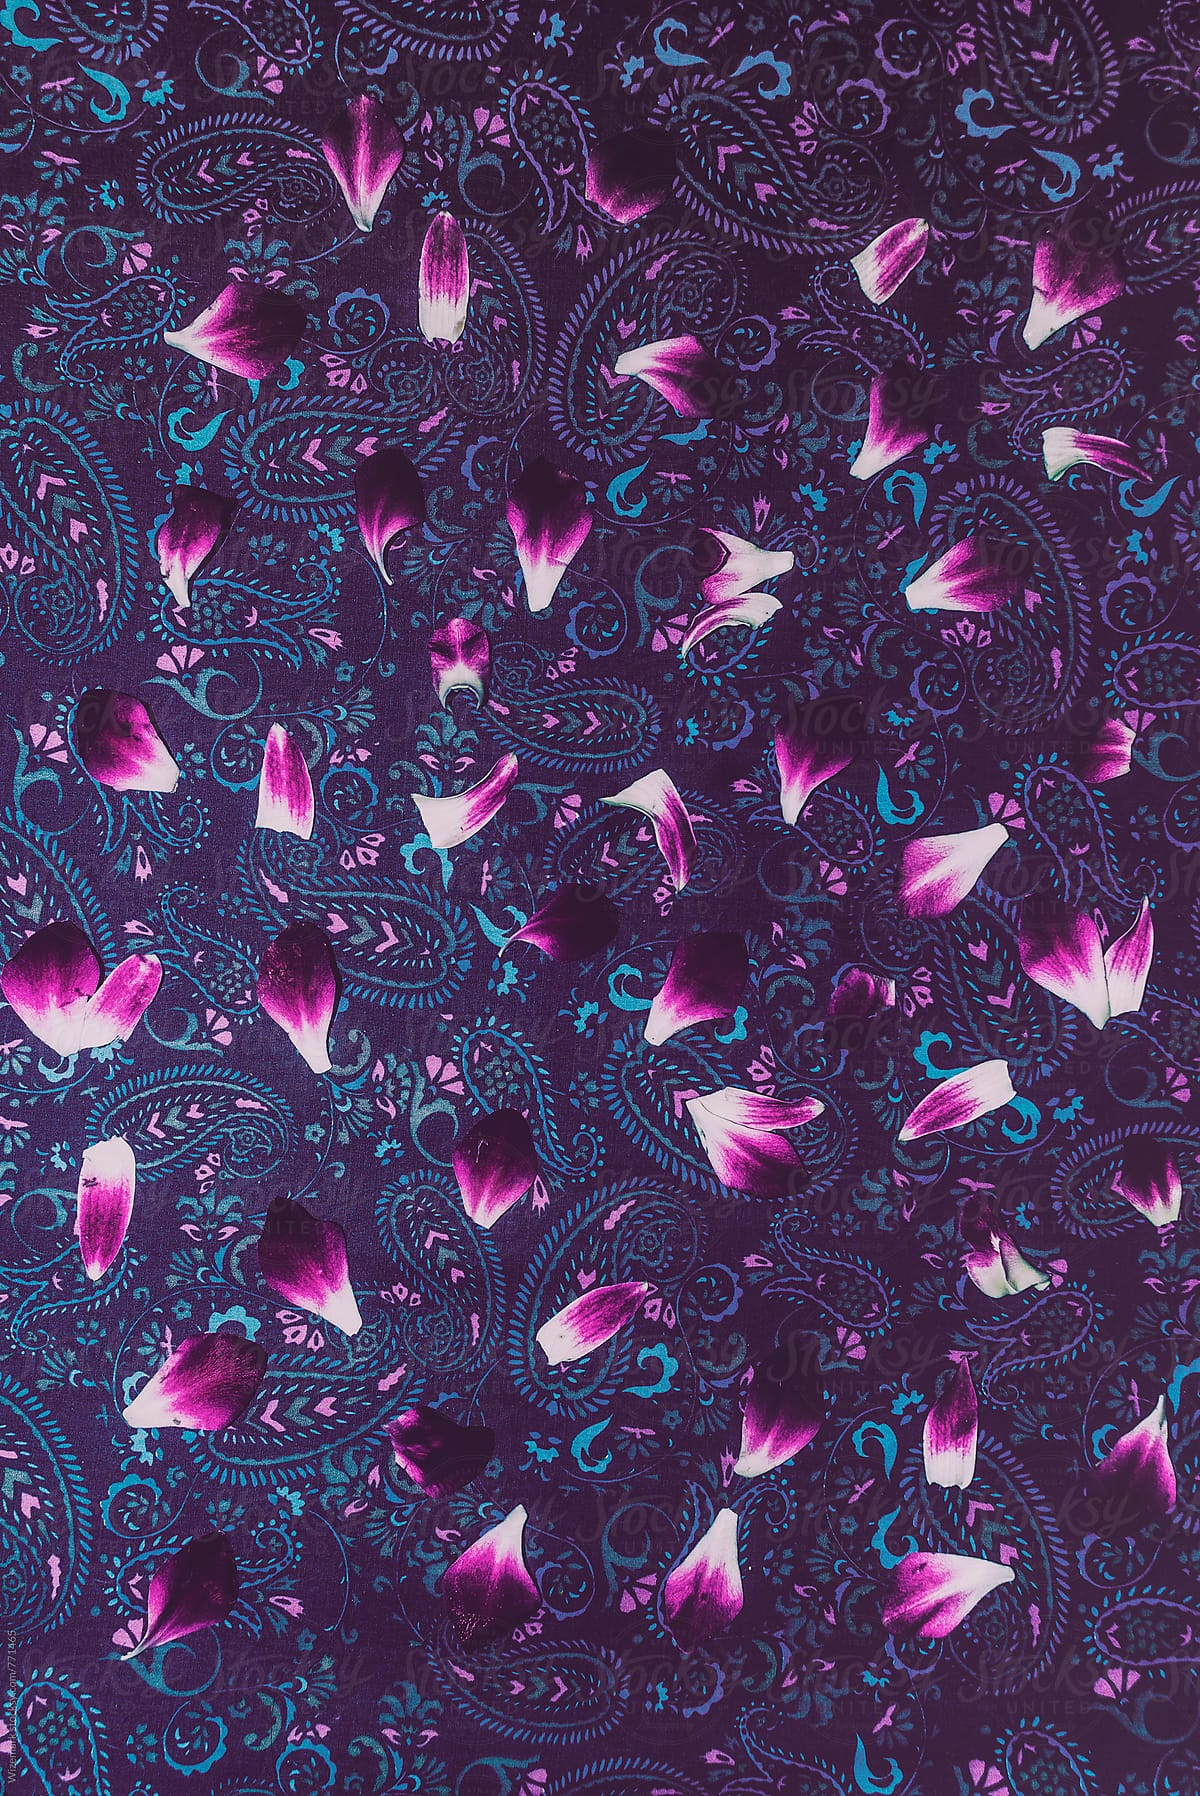 Bright vibrant vivid pinkpurple flower petals pattern on a bright vibrant vivid pinkpurple flower petals pattern on a striking purple paisley mightylinksfo